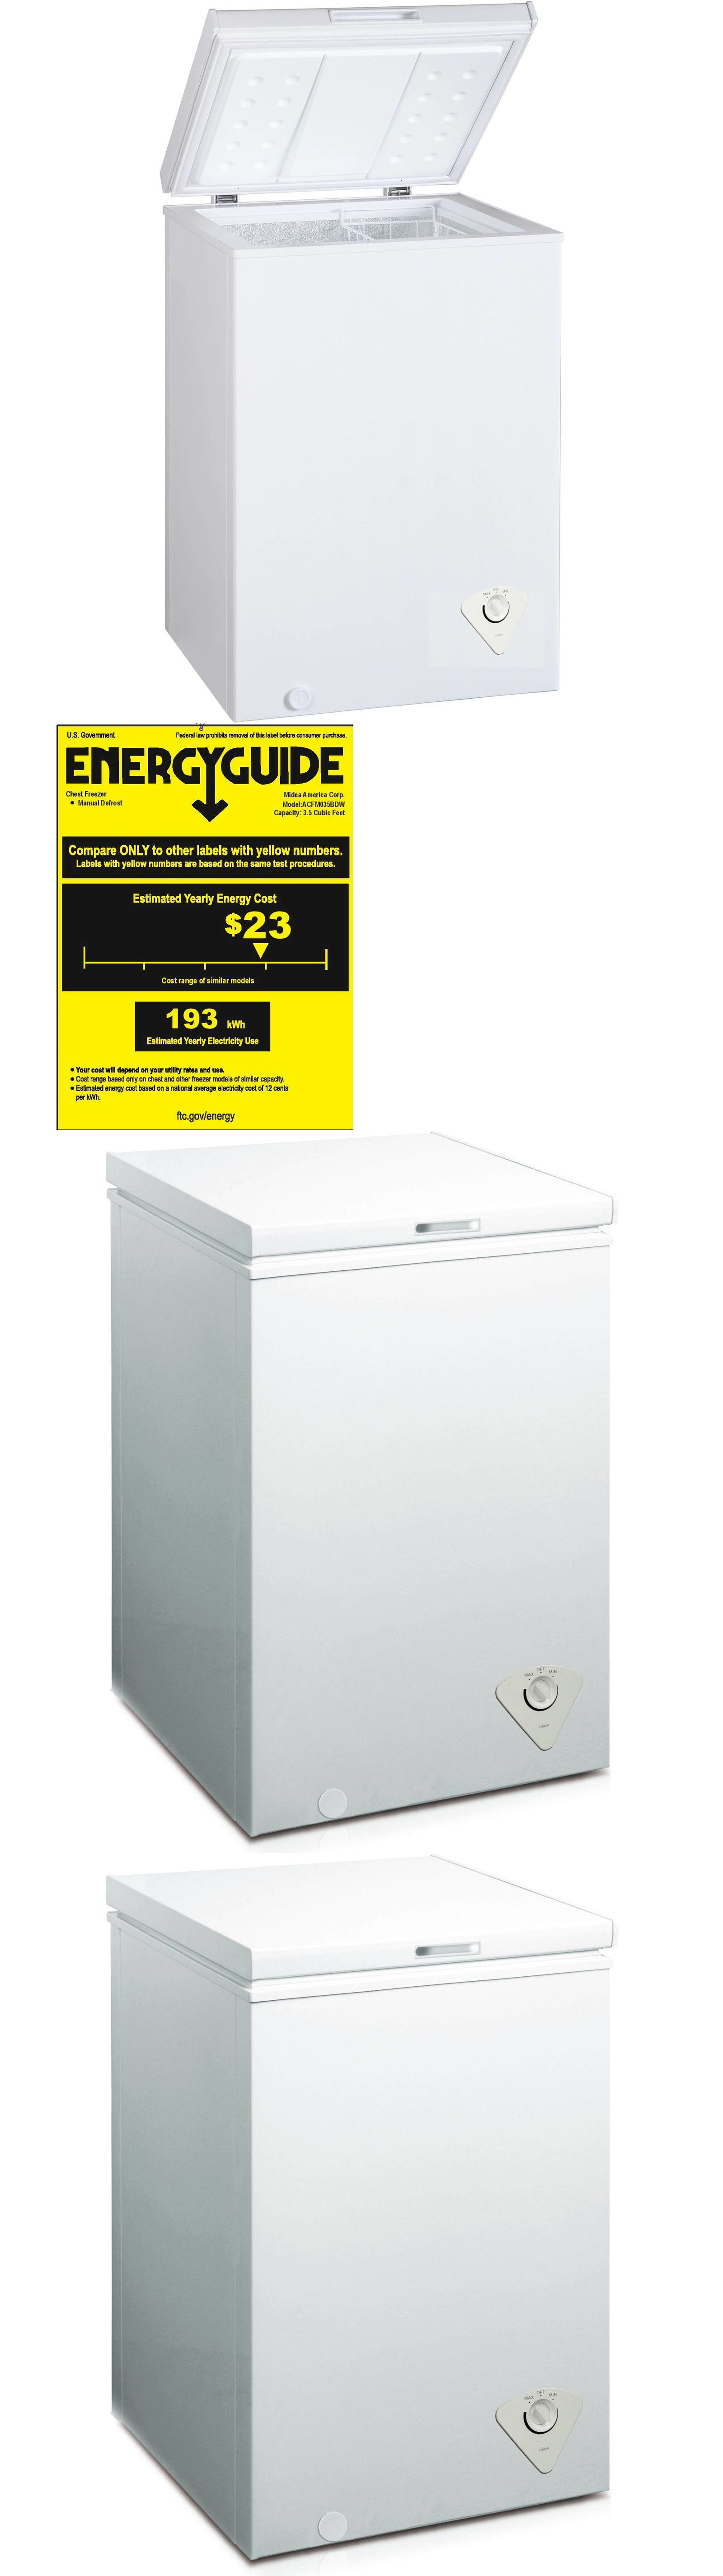 Upright and Chest Freezers 71260: Small Chest Freezer Dorm Room ...